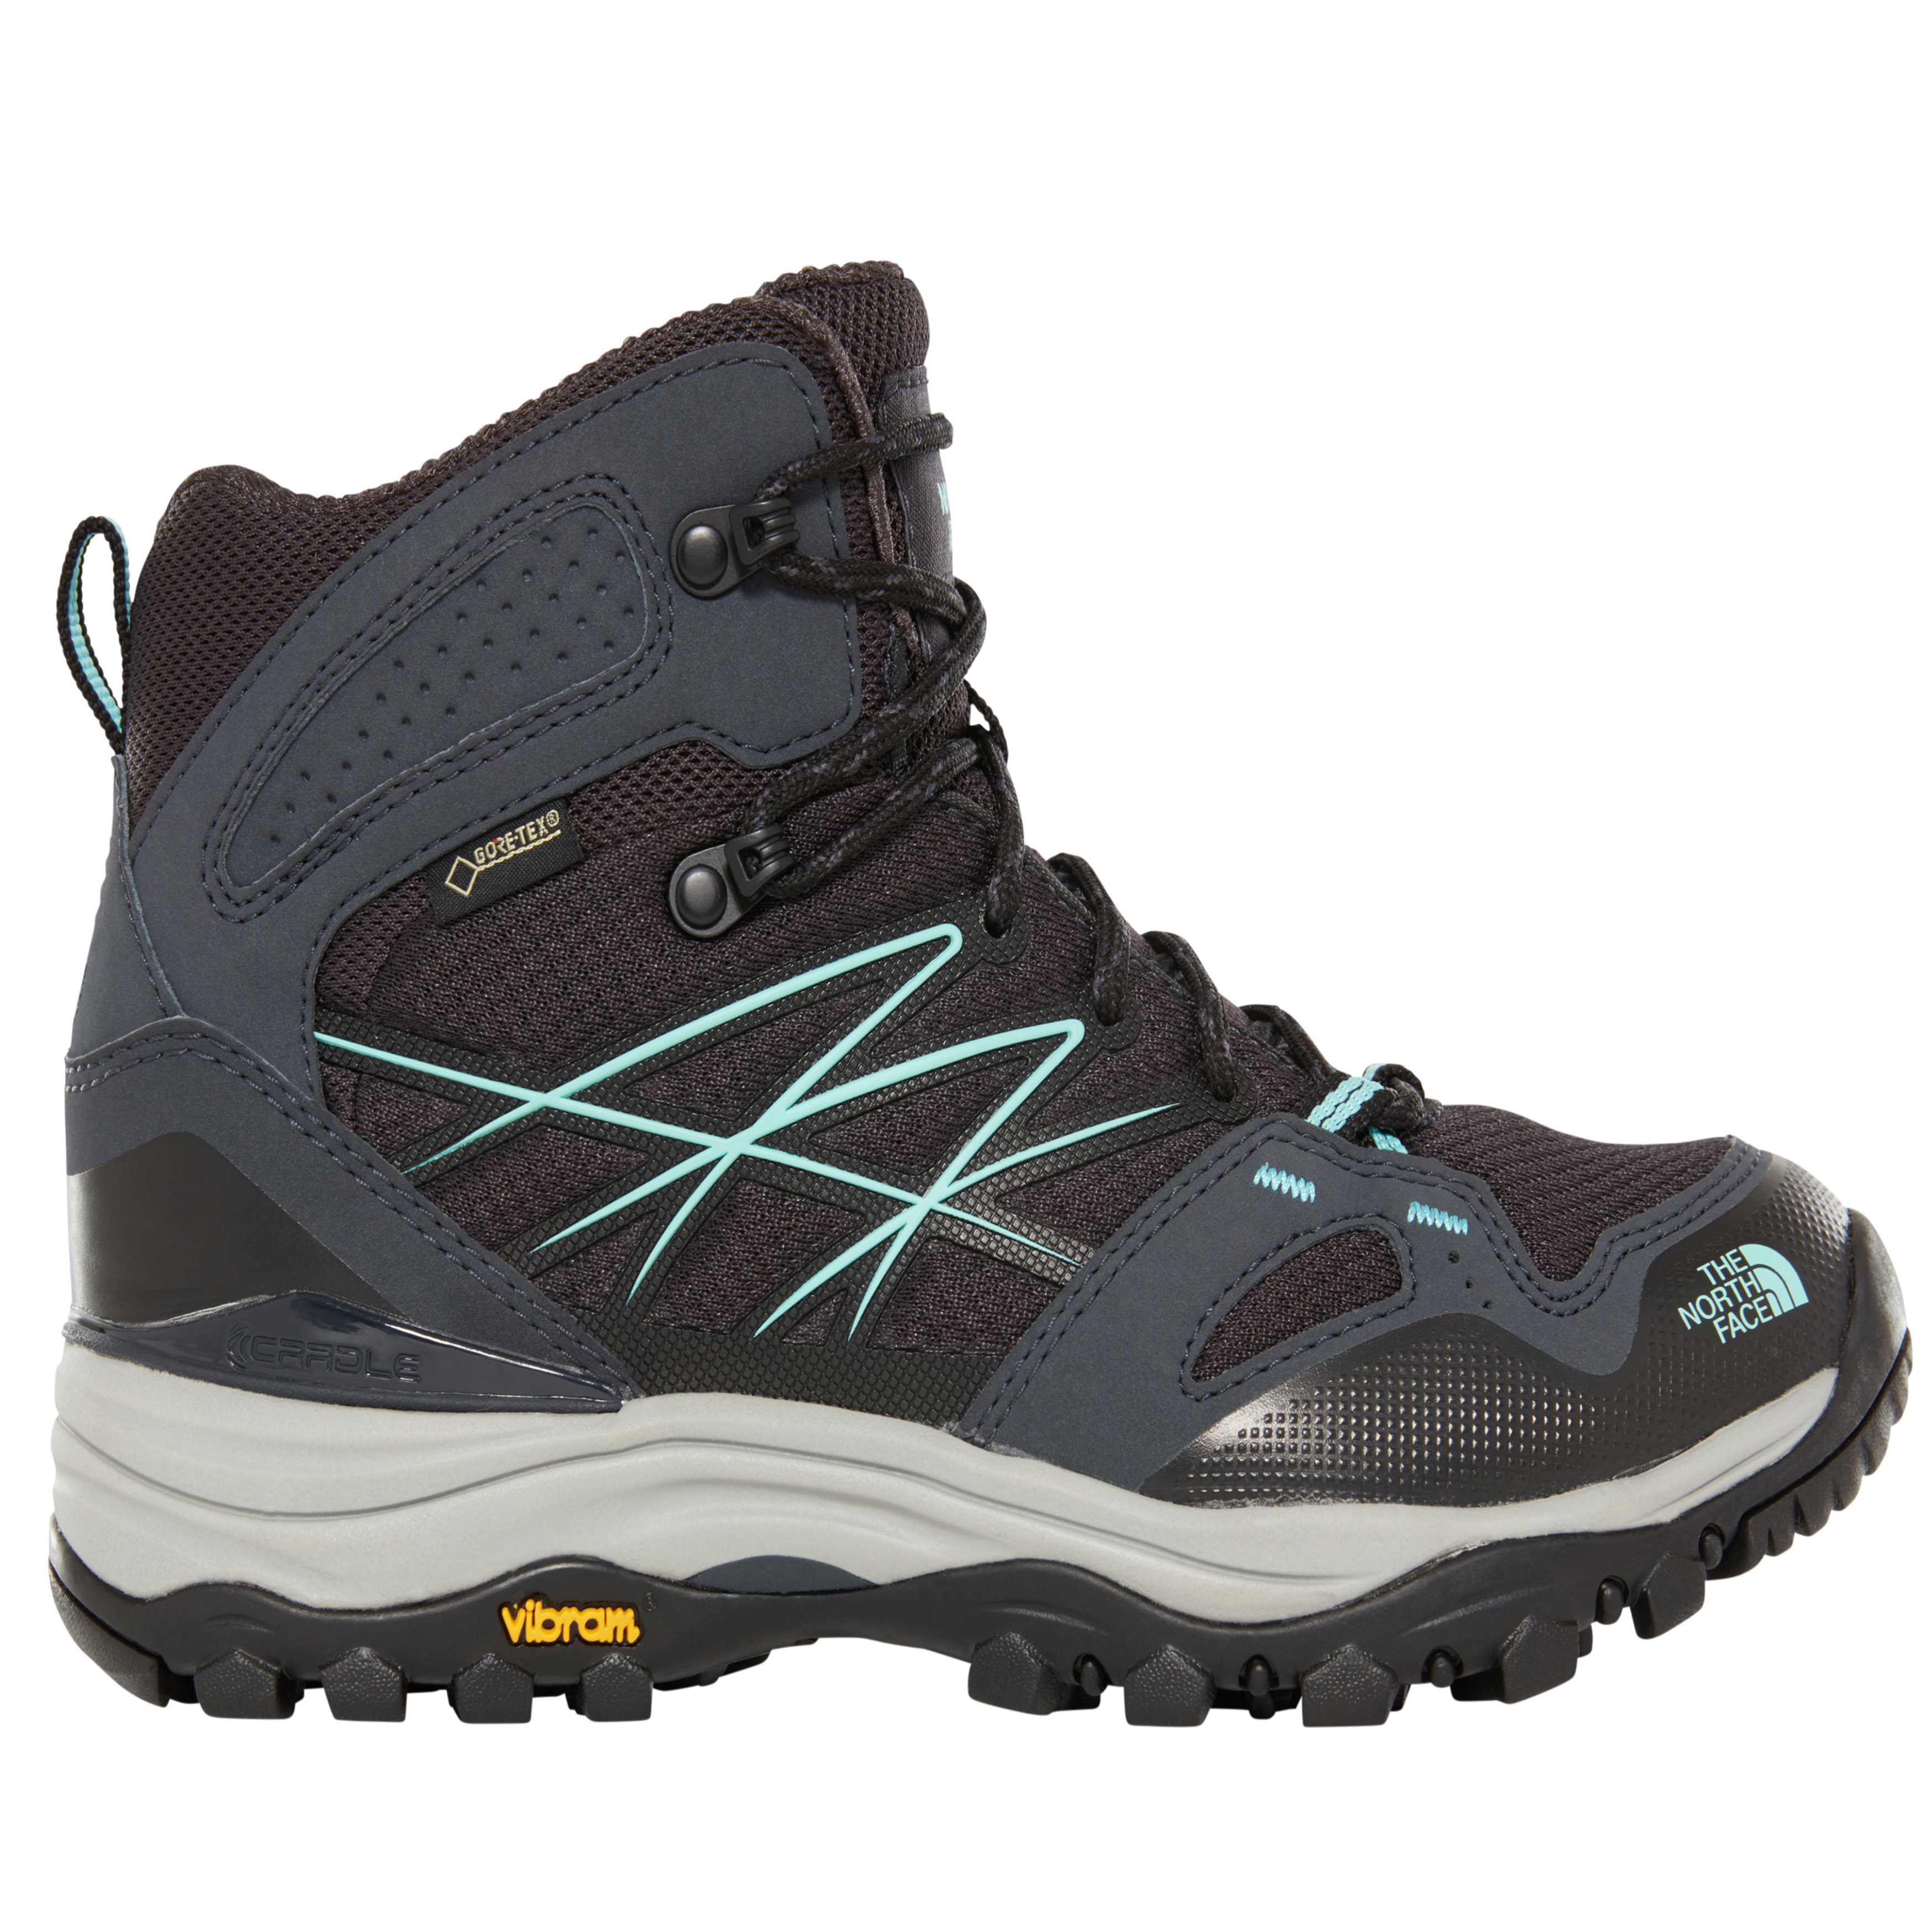 THE NORTH FACE W HEDGEHOG FASTPACK MID - gallery 0 2e70f9c48de1